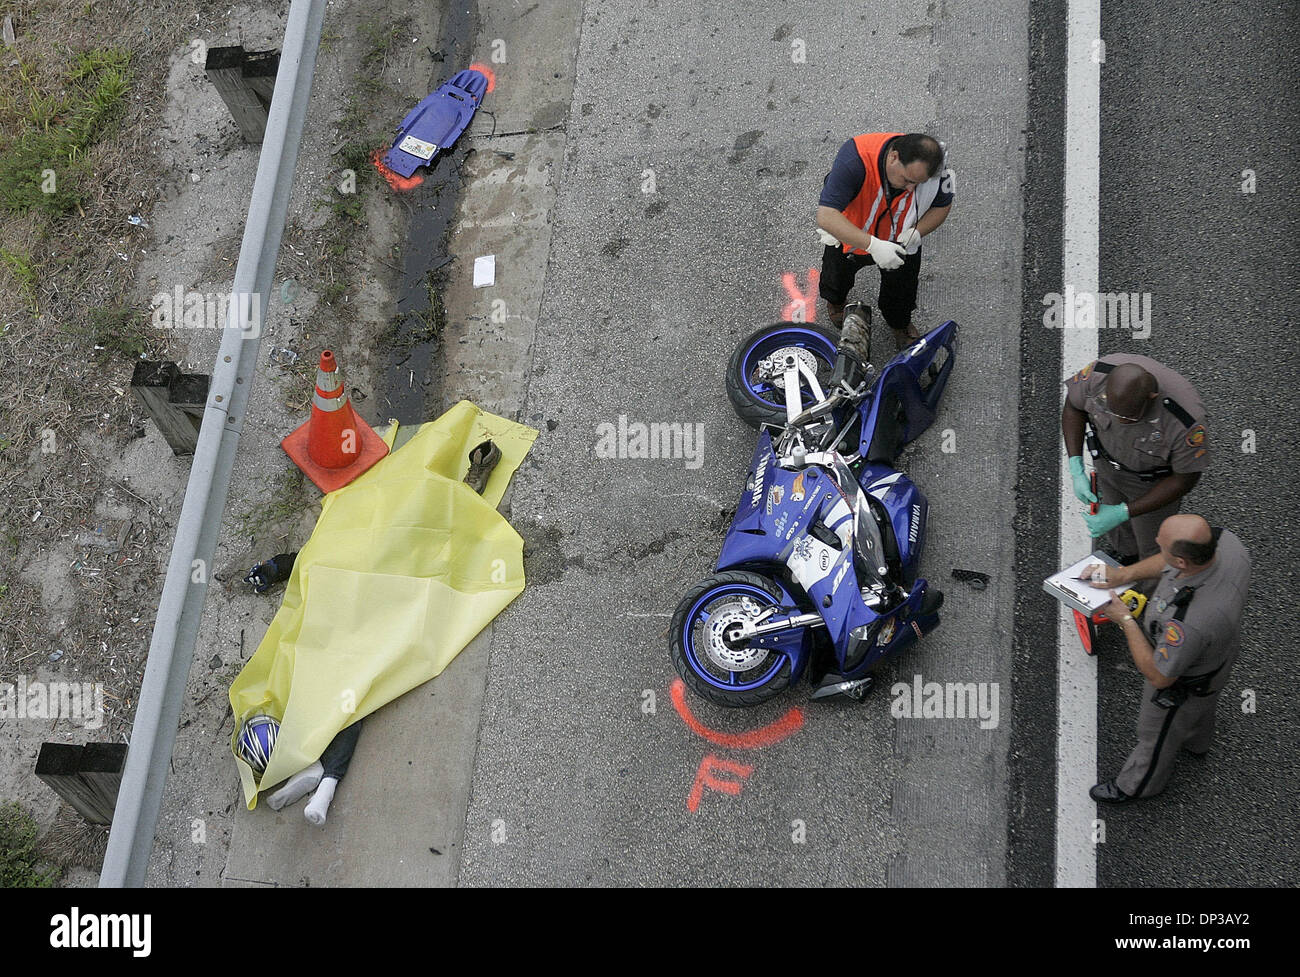 Florida Highway Patrol Traffic >> Jun 26, 2006; Palm Beach Gardens, FL, USA; A fatal motorcycle Stock Photo: 65227990 - Alamy